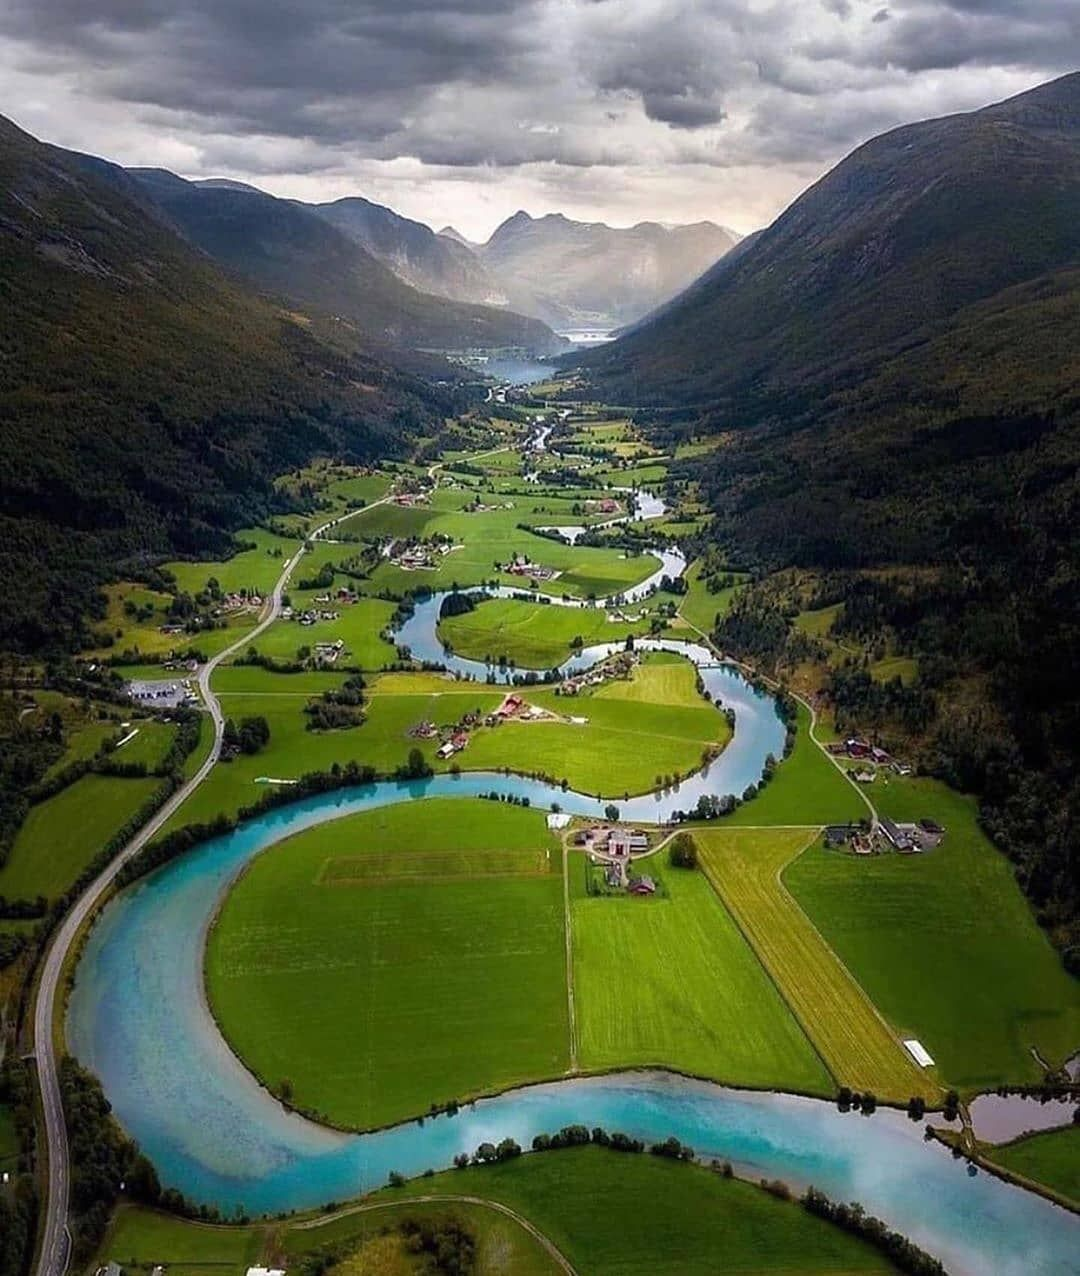 A bird's eye view of Norway ⛰️How beautiful is this valley